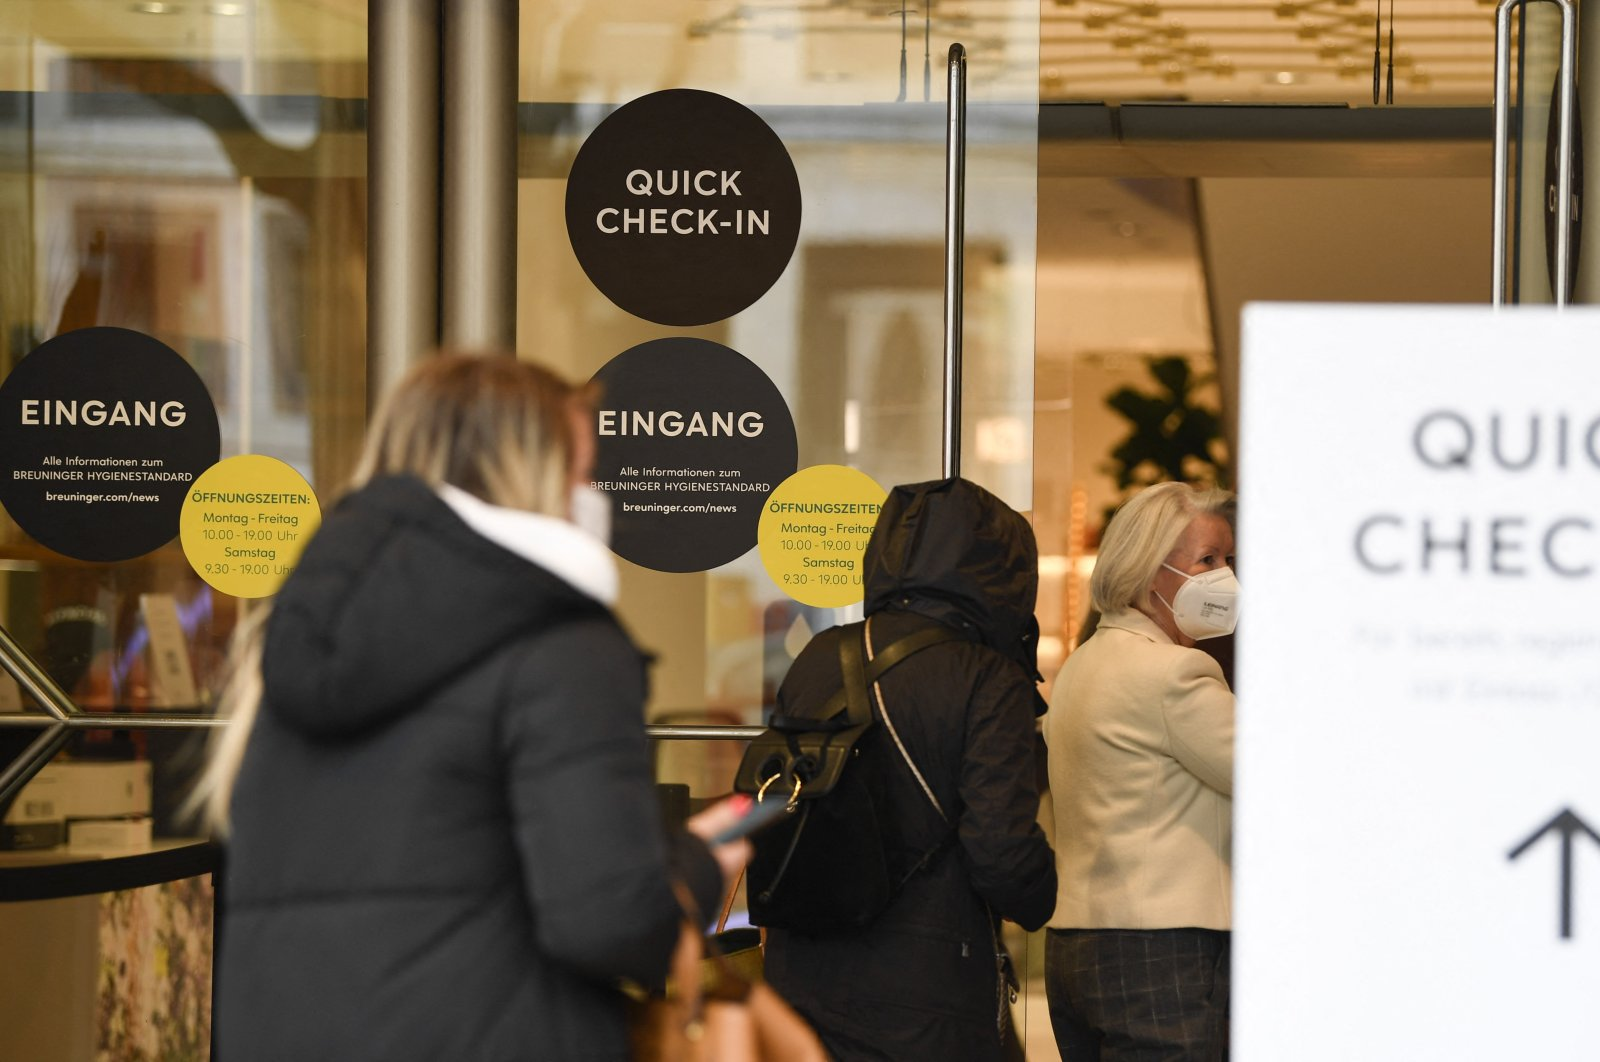 People line up in front of the entrance of a fashion store in Stuttgart, southern Germany, May 26, 2021. (AFP Photo)